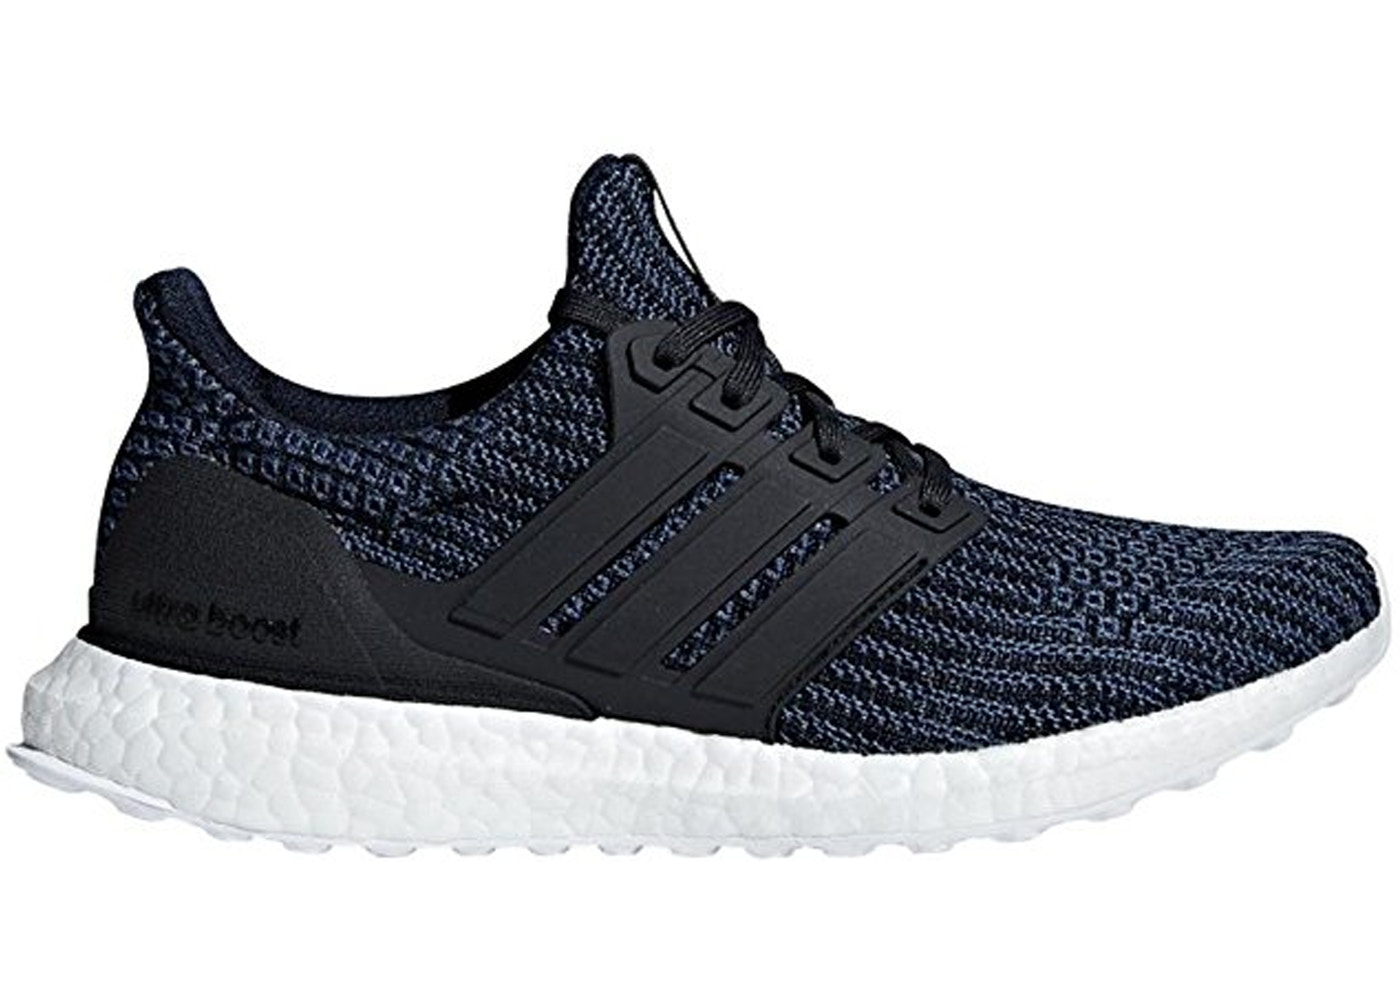 Buy Cheap Parley x adidas Ultra Boost 4.0 Shoes Sale 2018